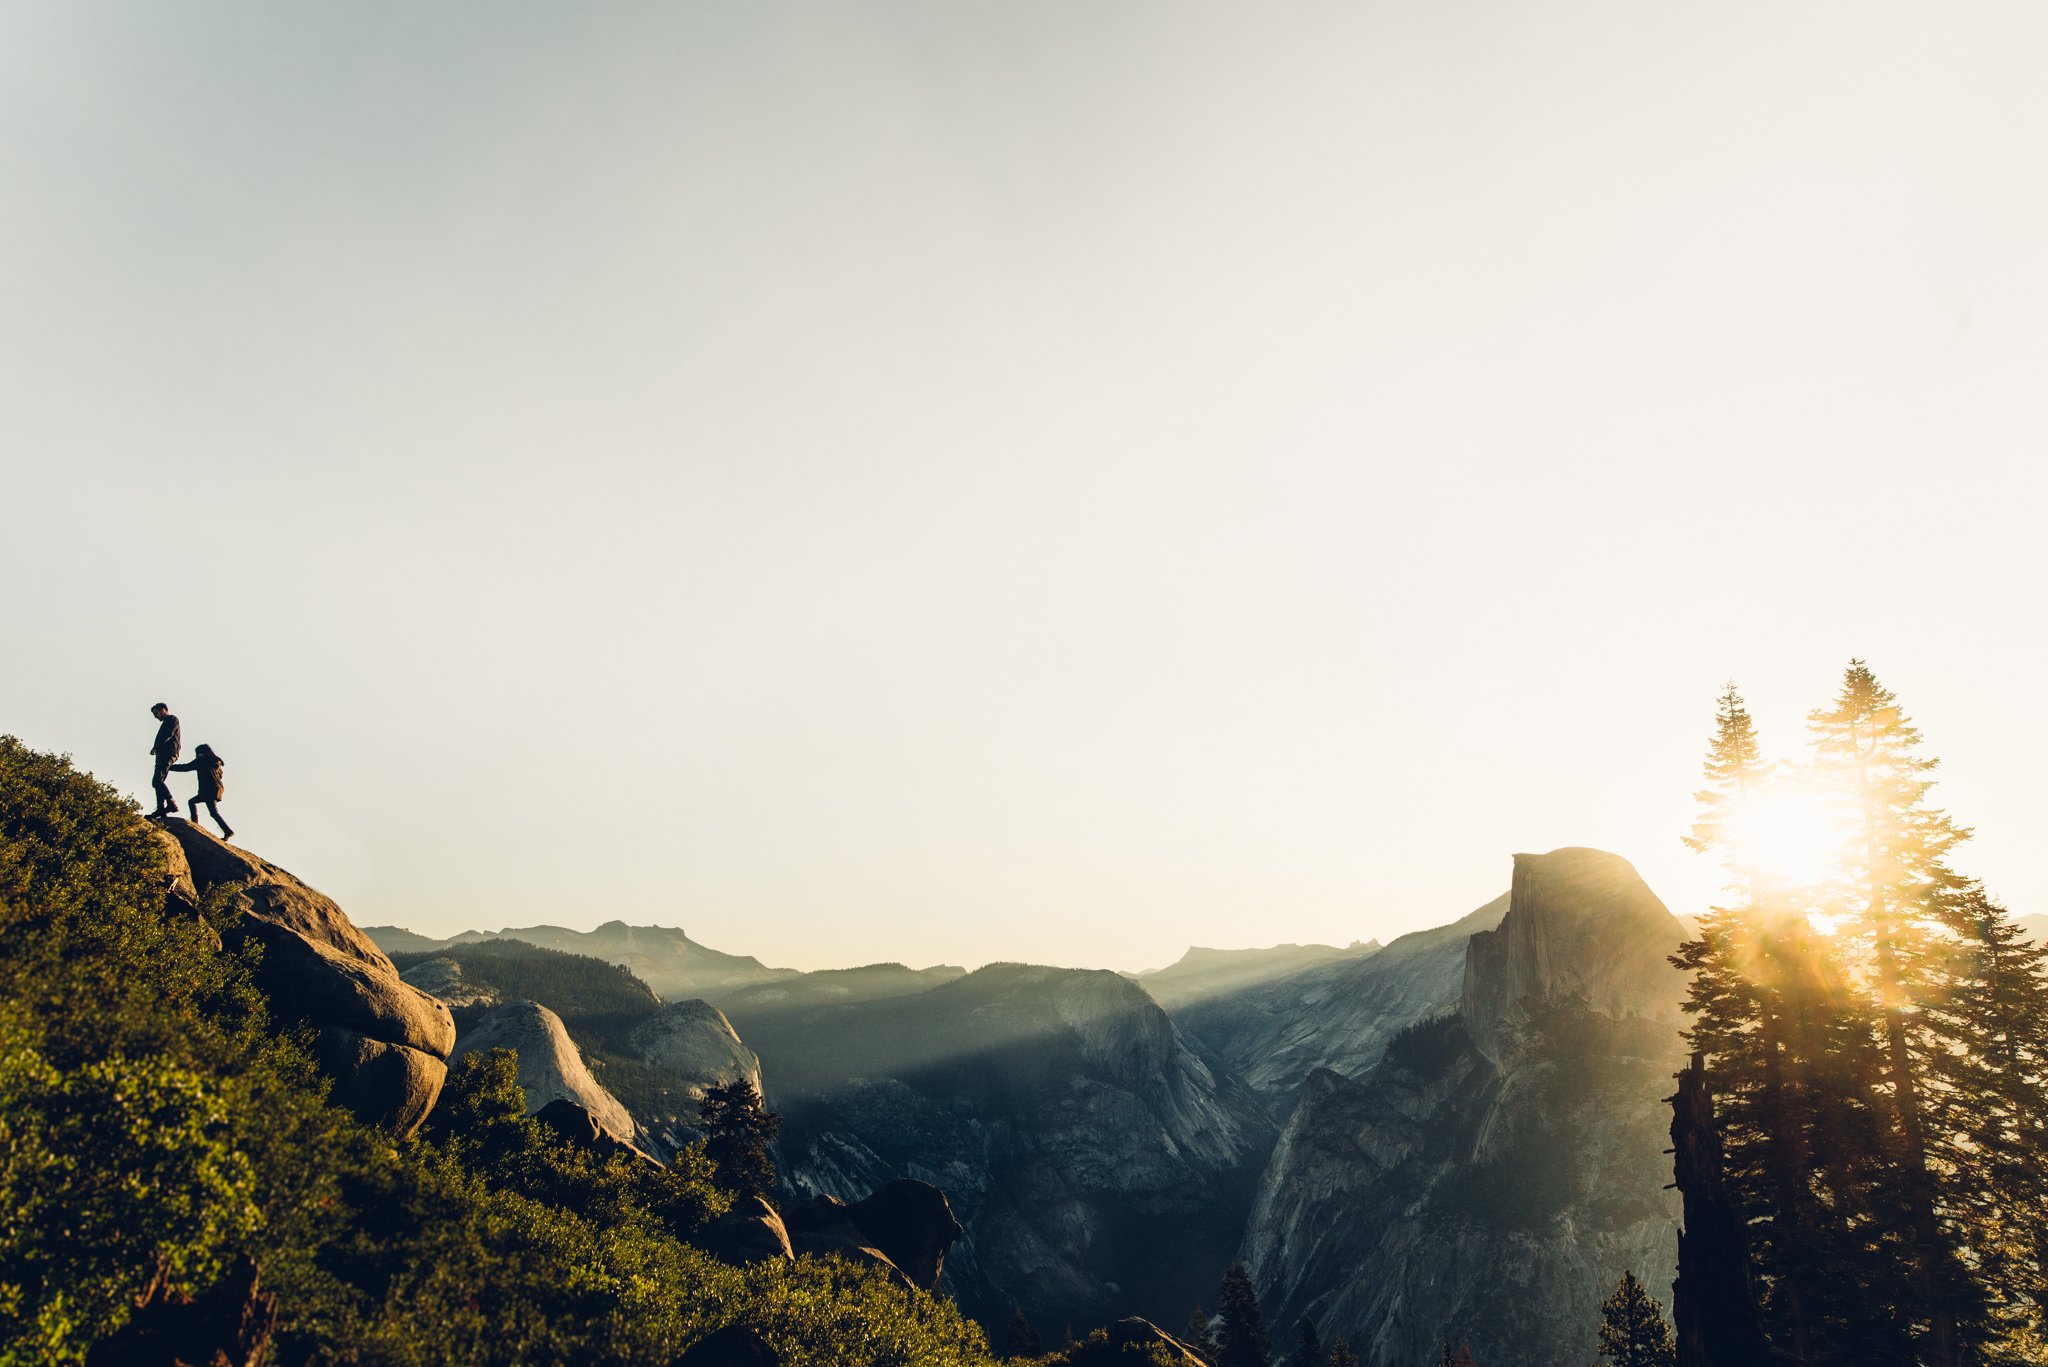 ©Isaiah & Taylor Photography - Los Angeles Destination Wedding Photographer - Yosemite National Park Hiking Adventure Engagement - Glacier Point Sunrise-027.jpg